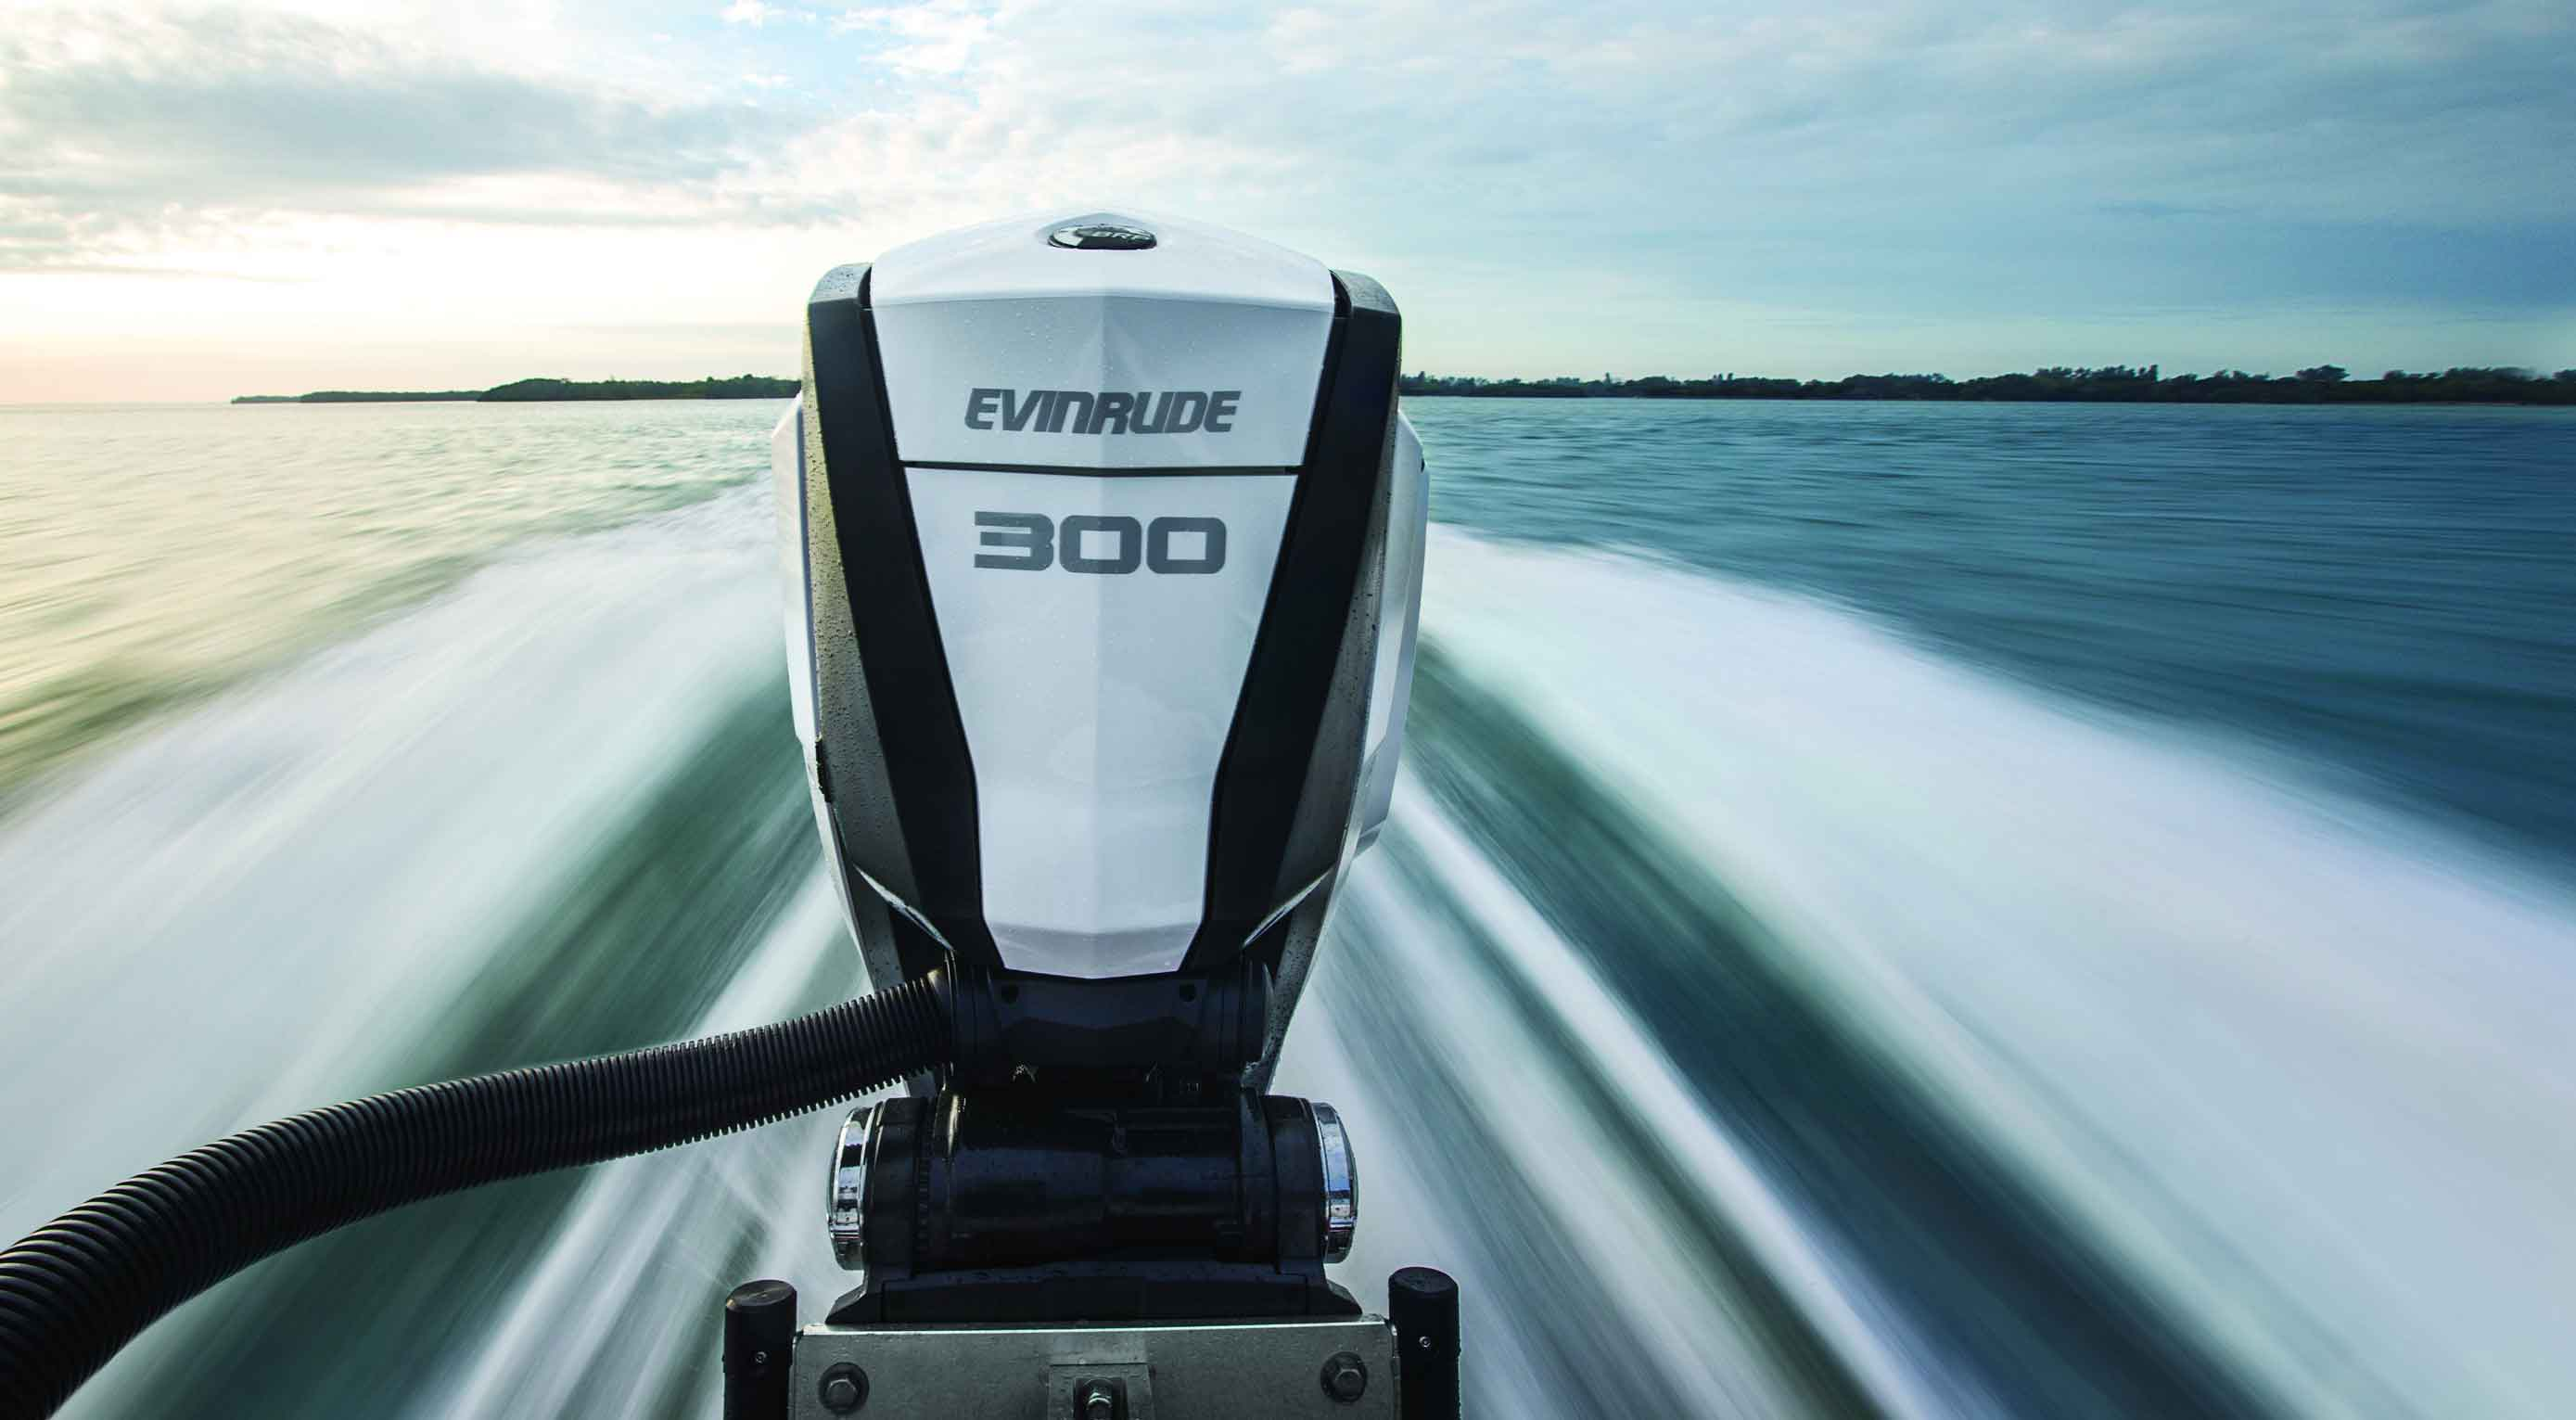 Evinrude g2 the future boat gold coast for Most reliable outboard motor 2016